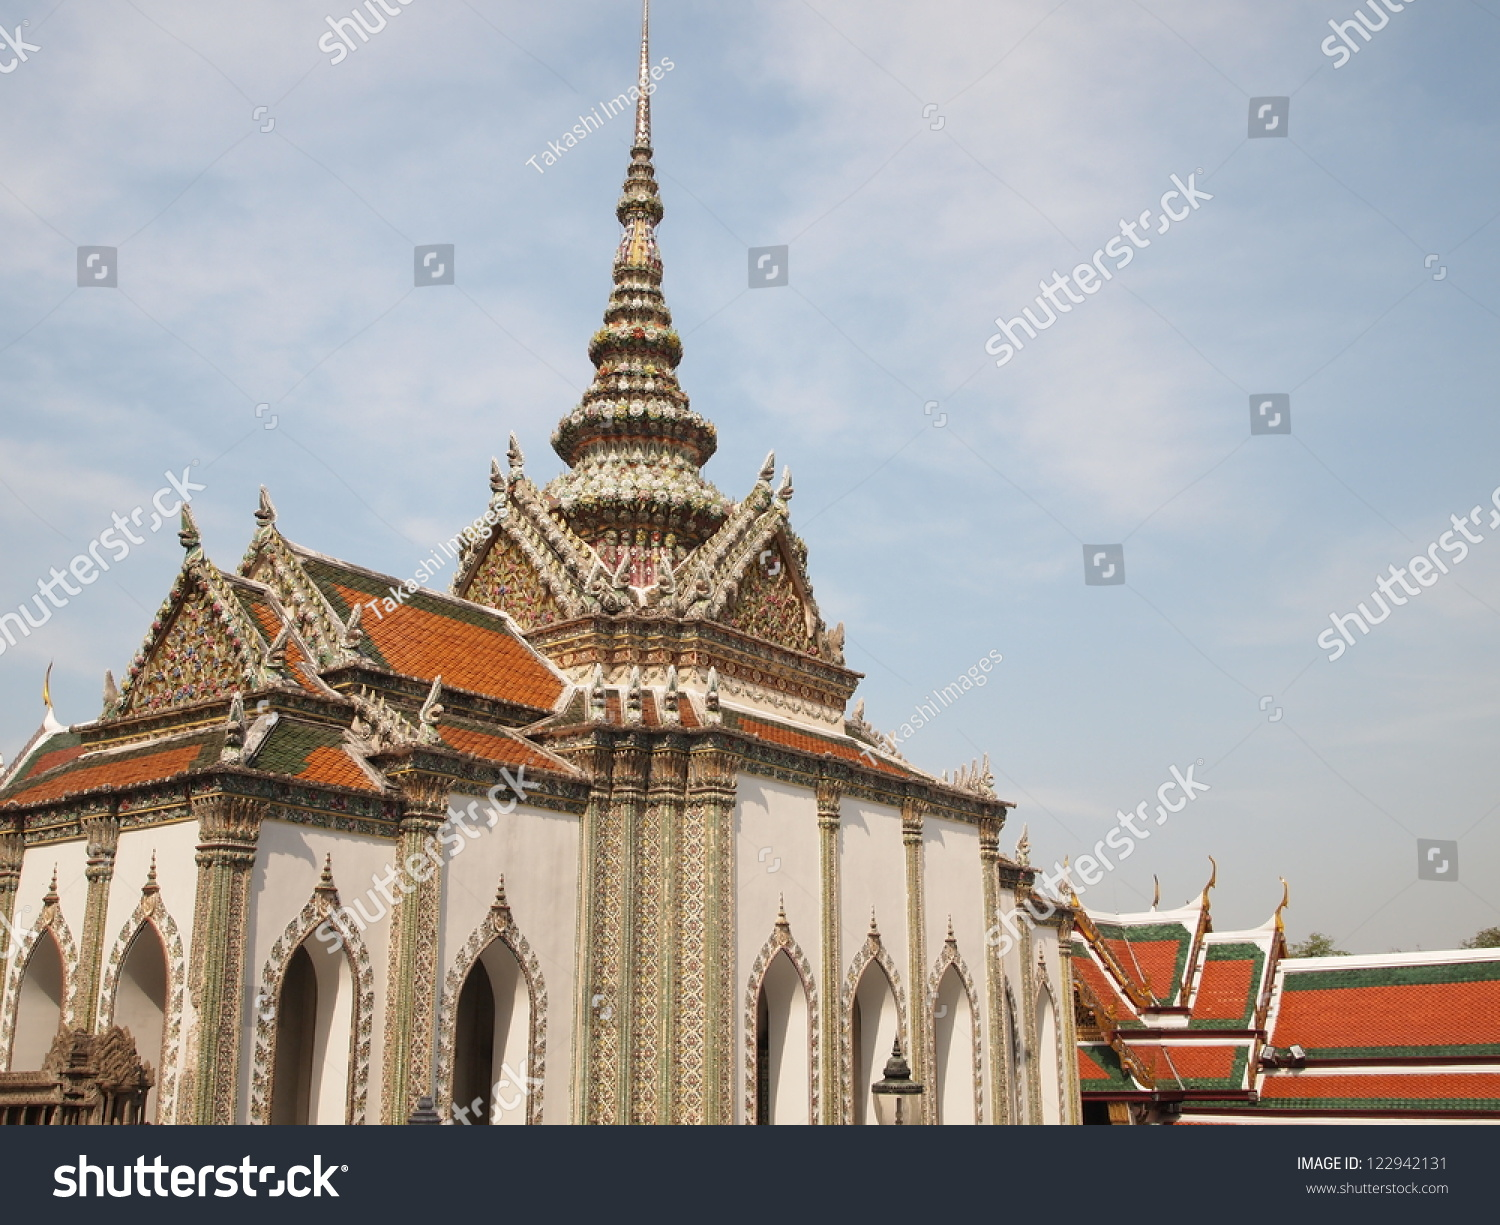 Phra Wiharn Yod At Temple Of The Emerald Buddha In Bangkok ...